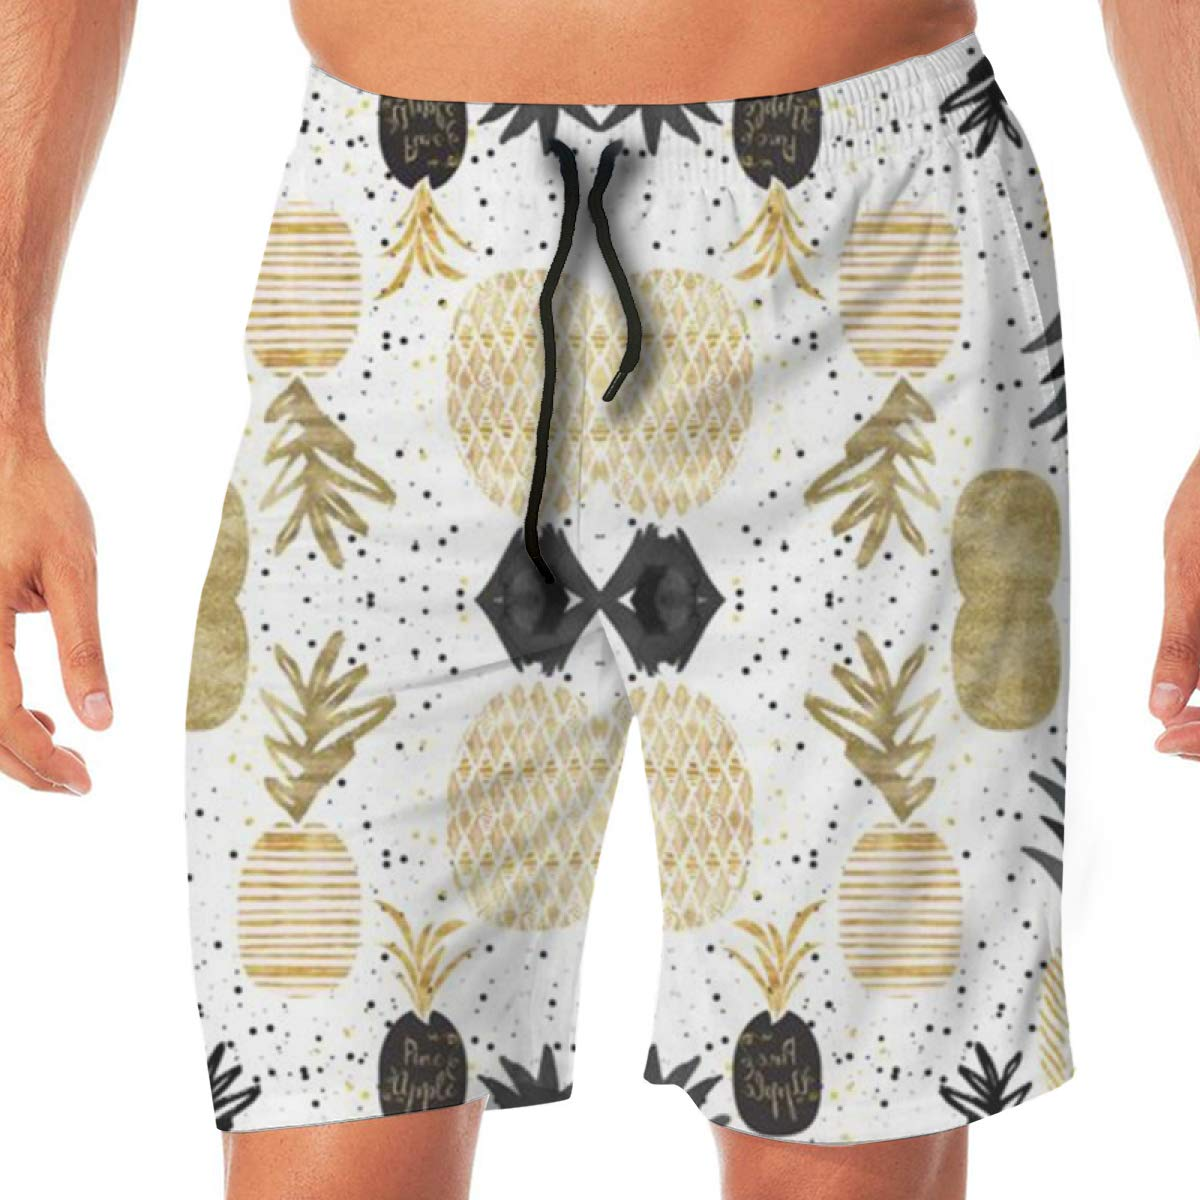 TR2YU7YT Golden Pineapples Casual Mens Swim Trunks Quick Dry Printed Beach Shorts Summer Boardshorts Bathing Suits with Drawstring